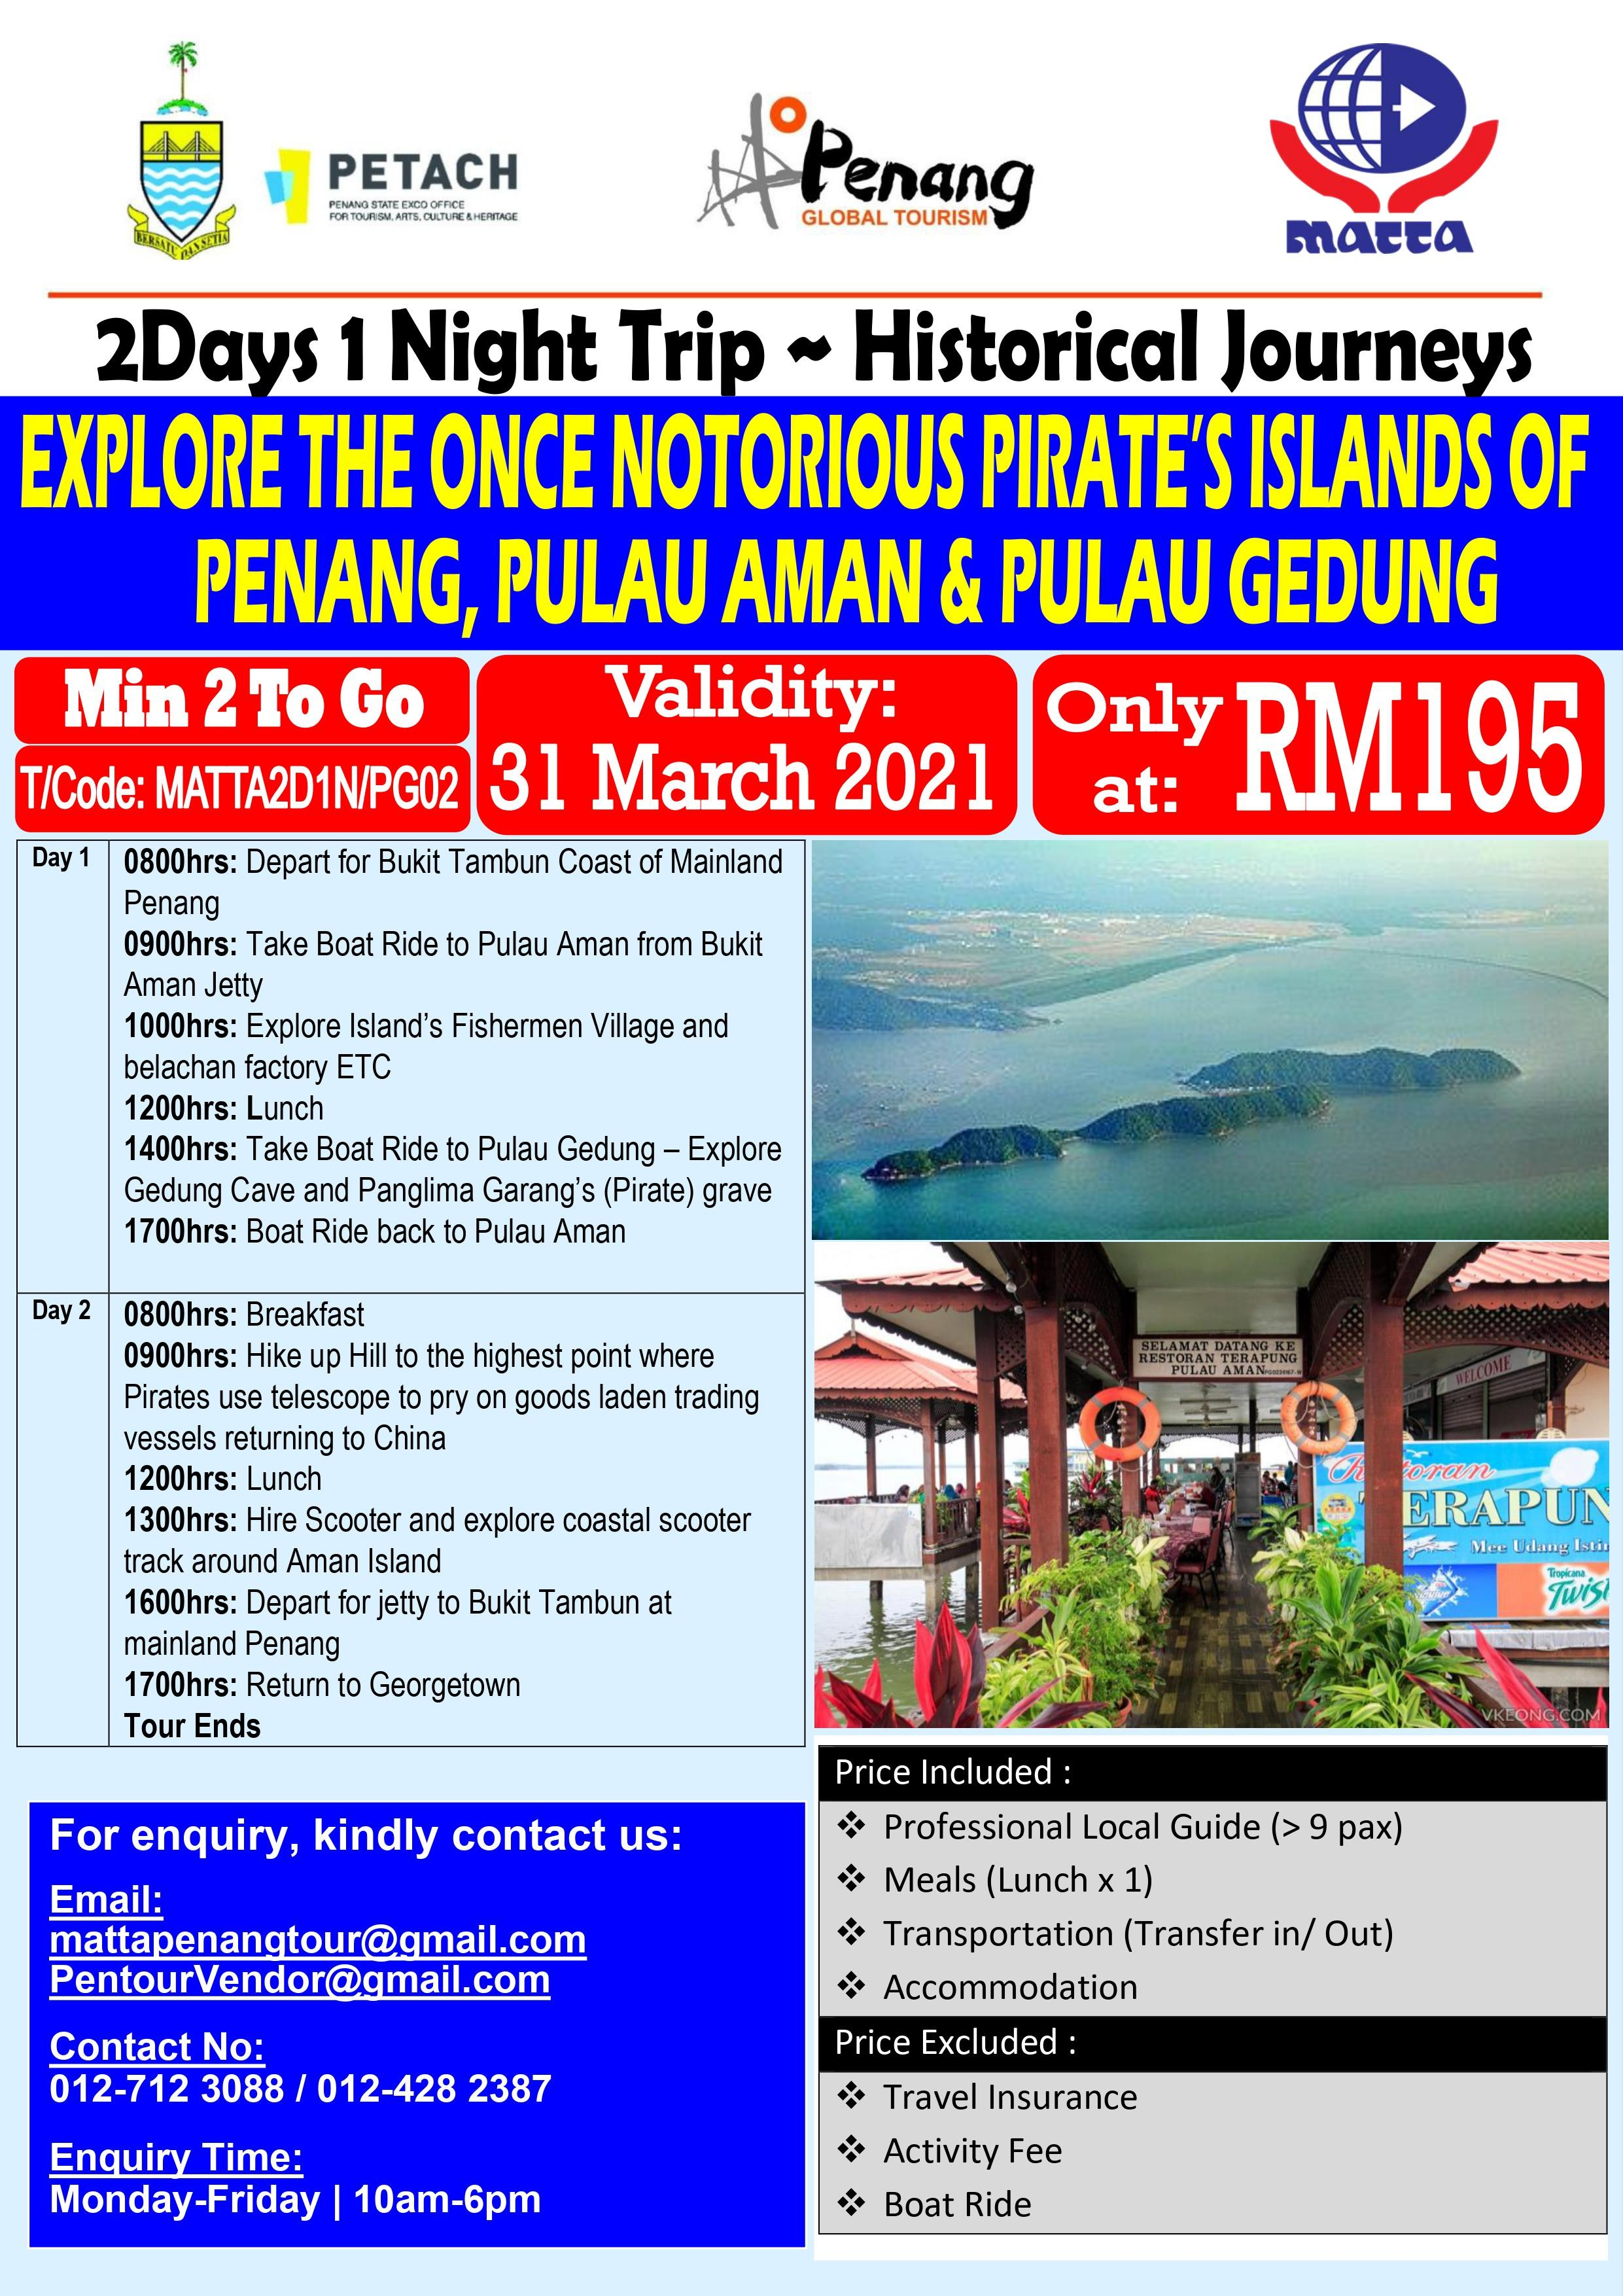 Pirate Island of Penang - 2D 1N